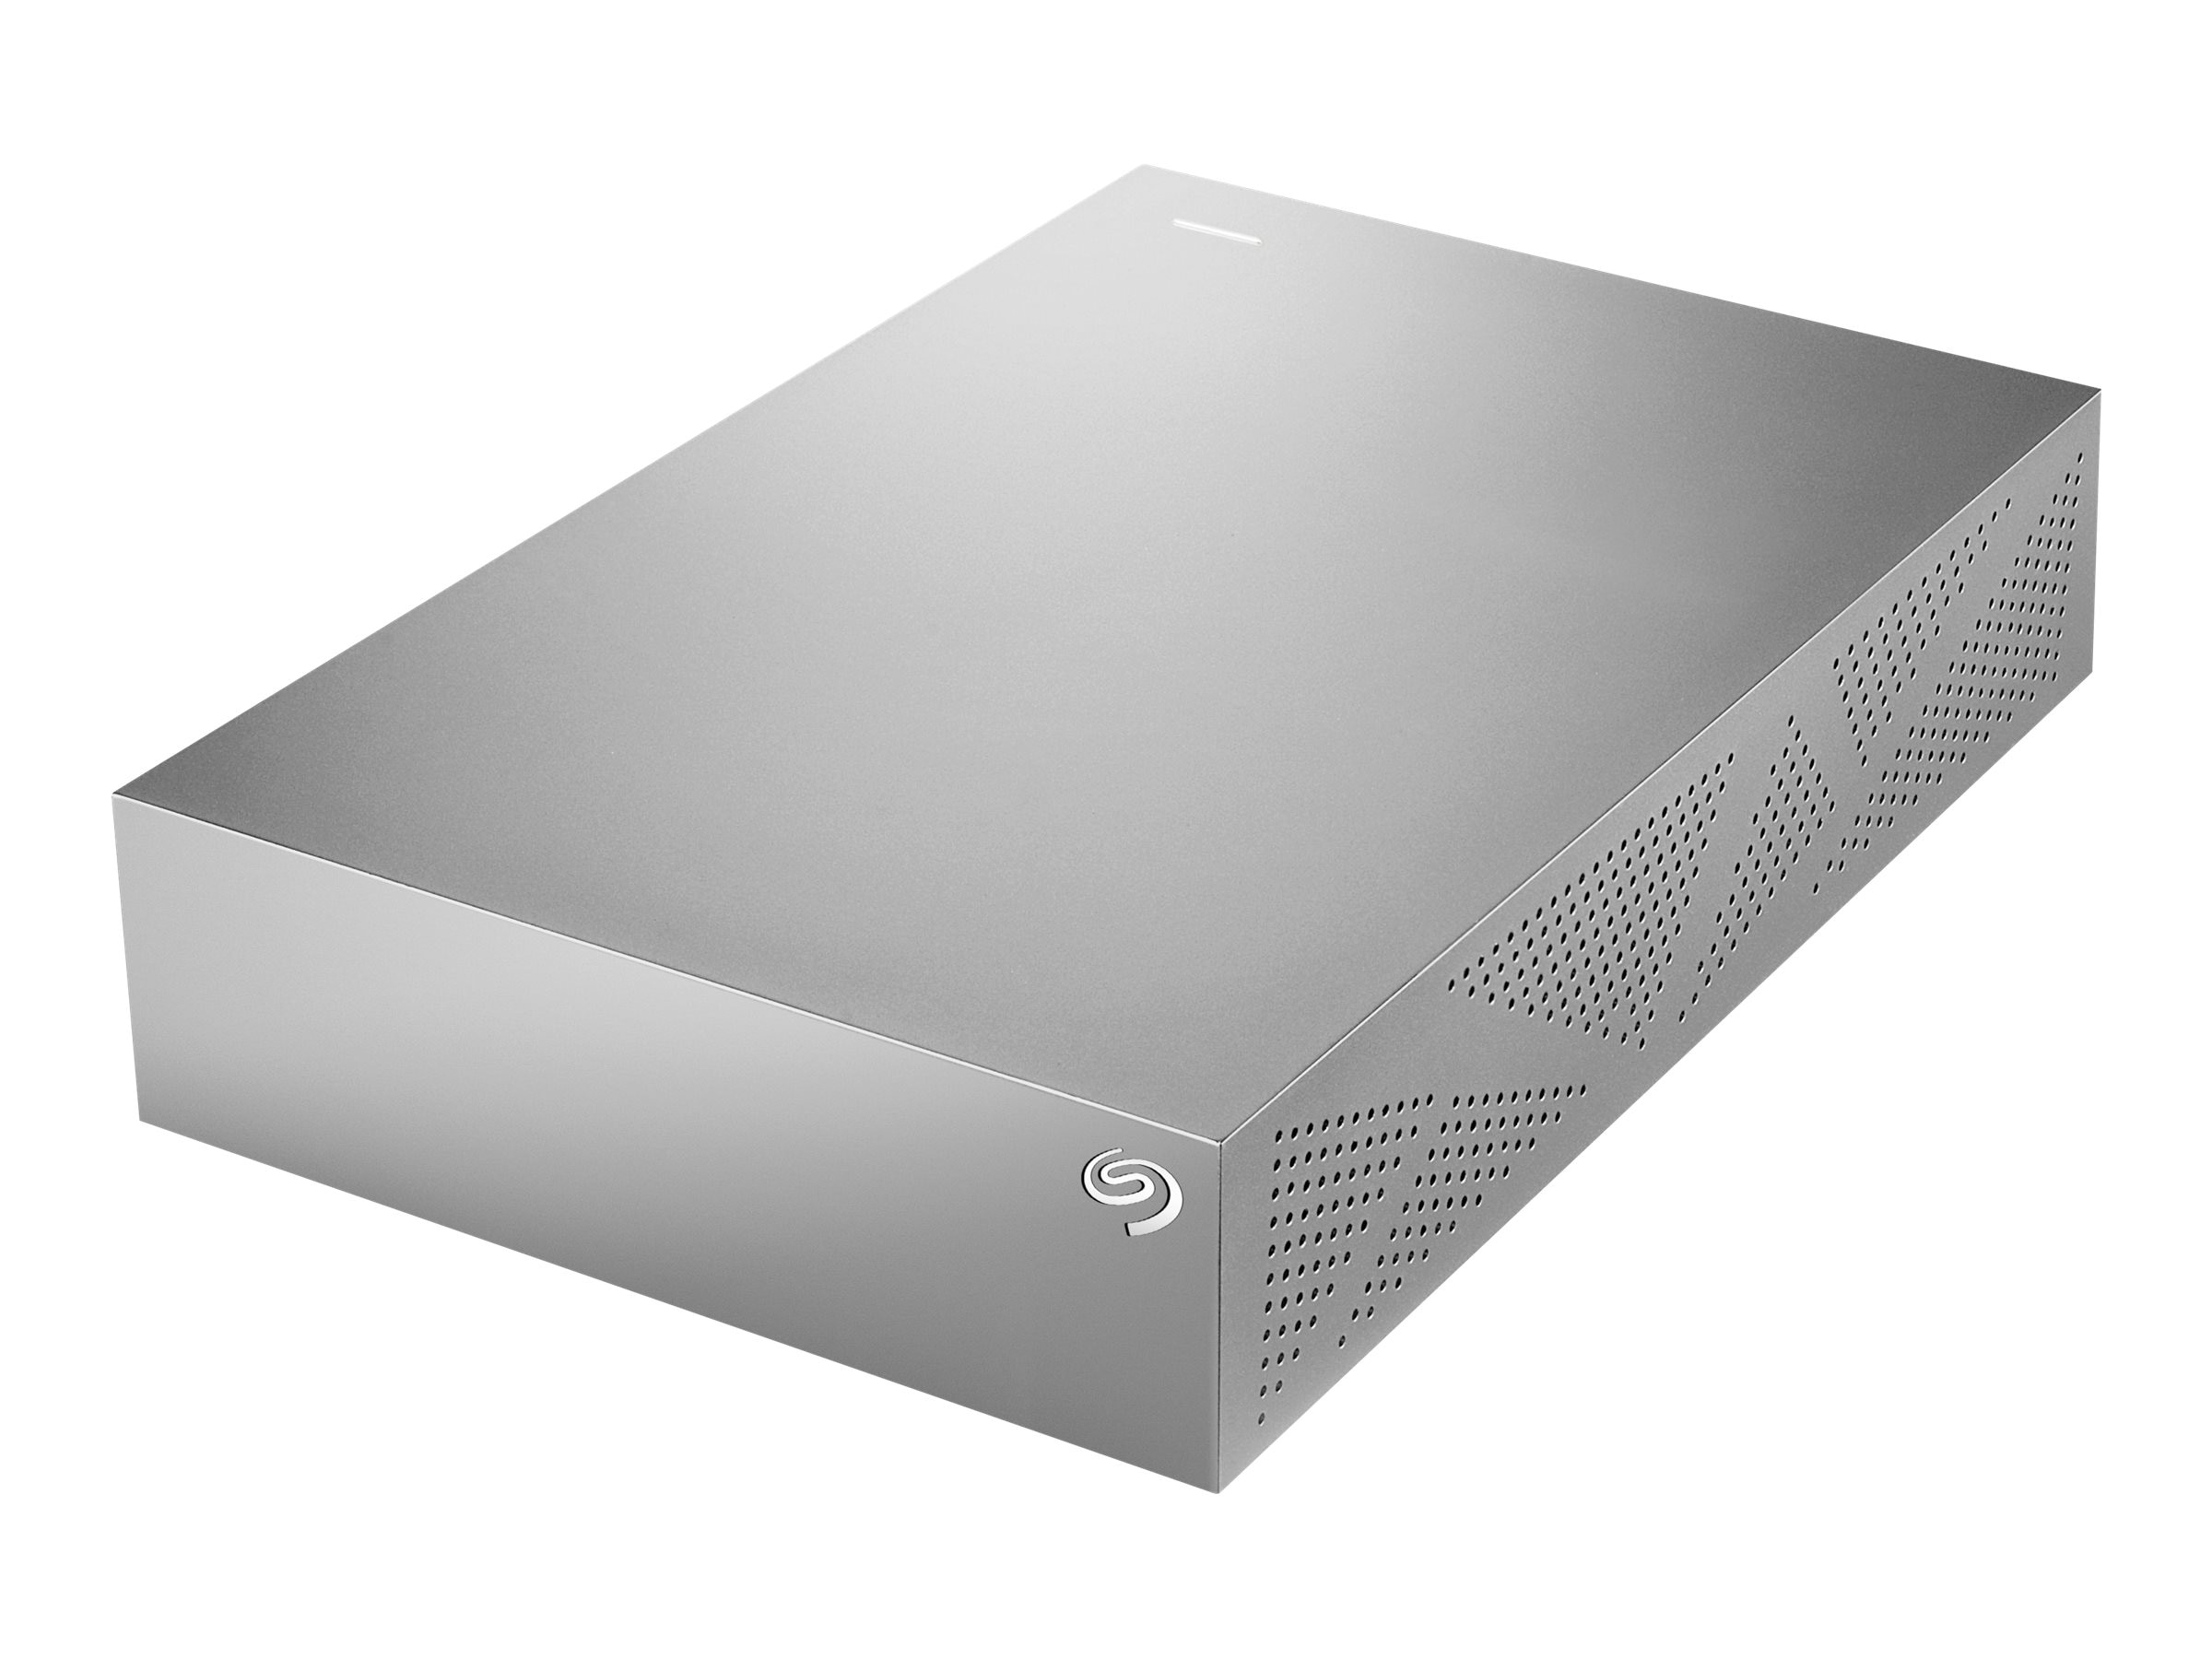 Seagate 3TB Backup Plus for Mac USB 3.0 2.5 External Hard Drive